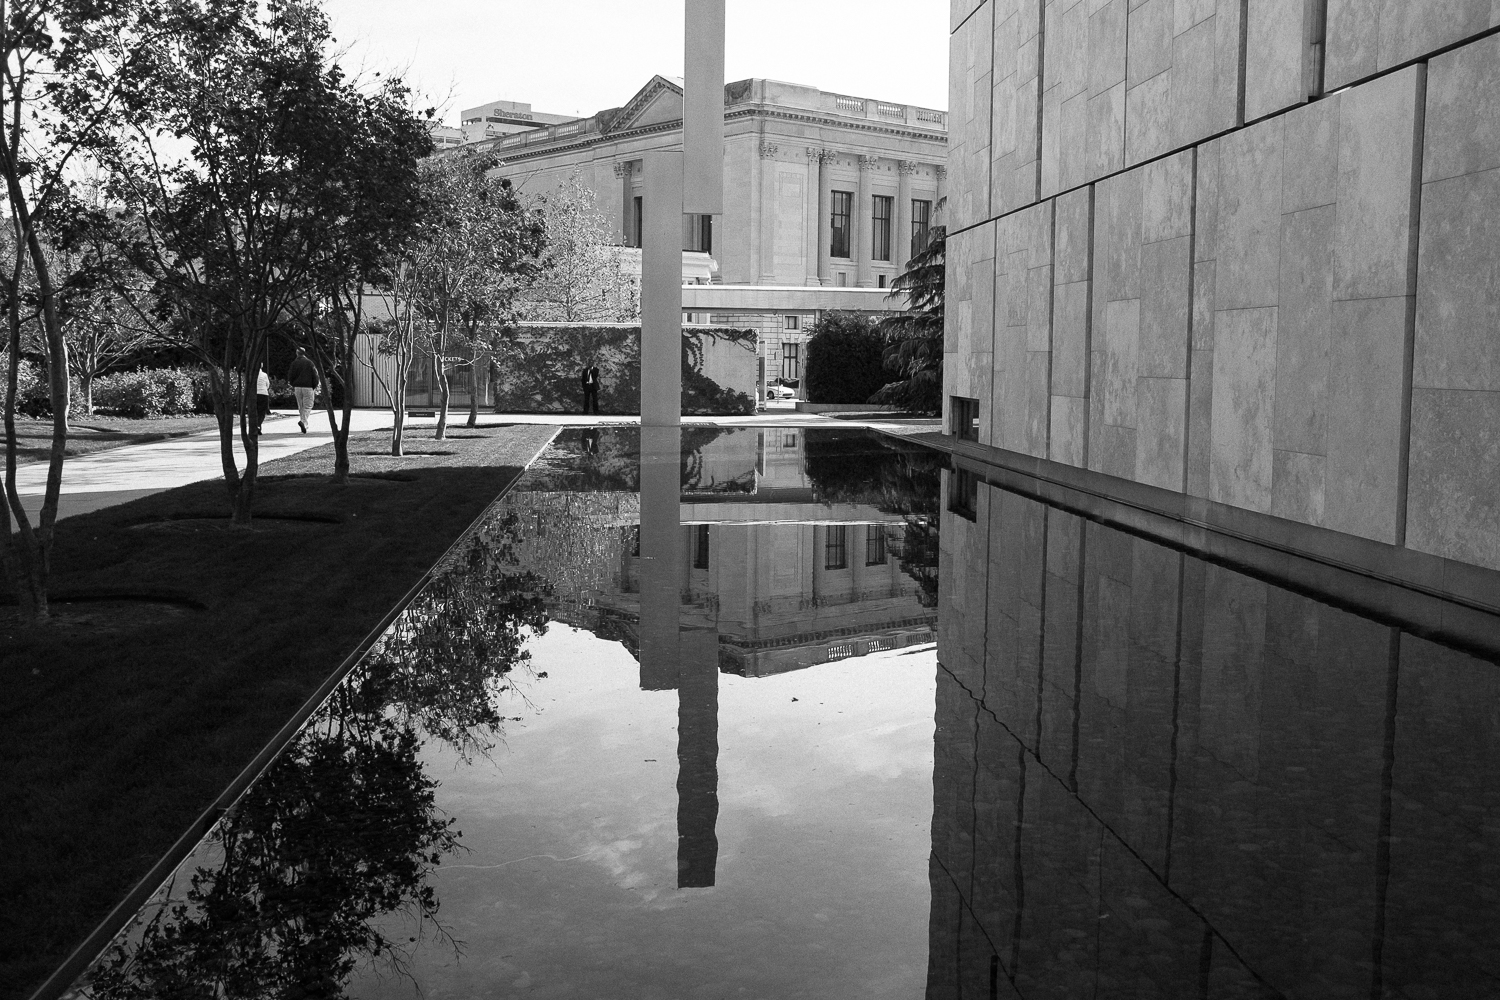 The Reflecting Pool at The Barnes Museum. Philadelphia's Barnes Museum houses one of the largest collections of Impressionist works in the world.